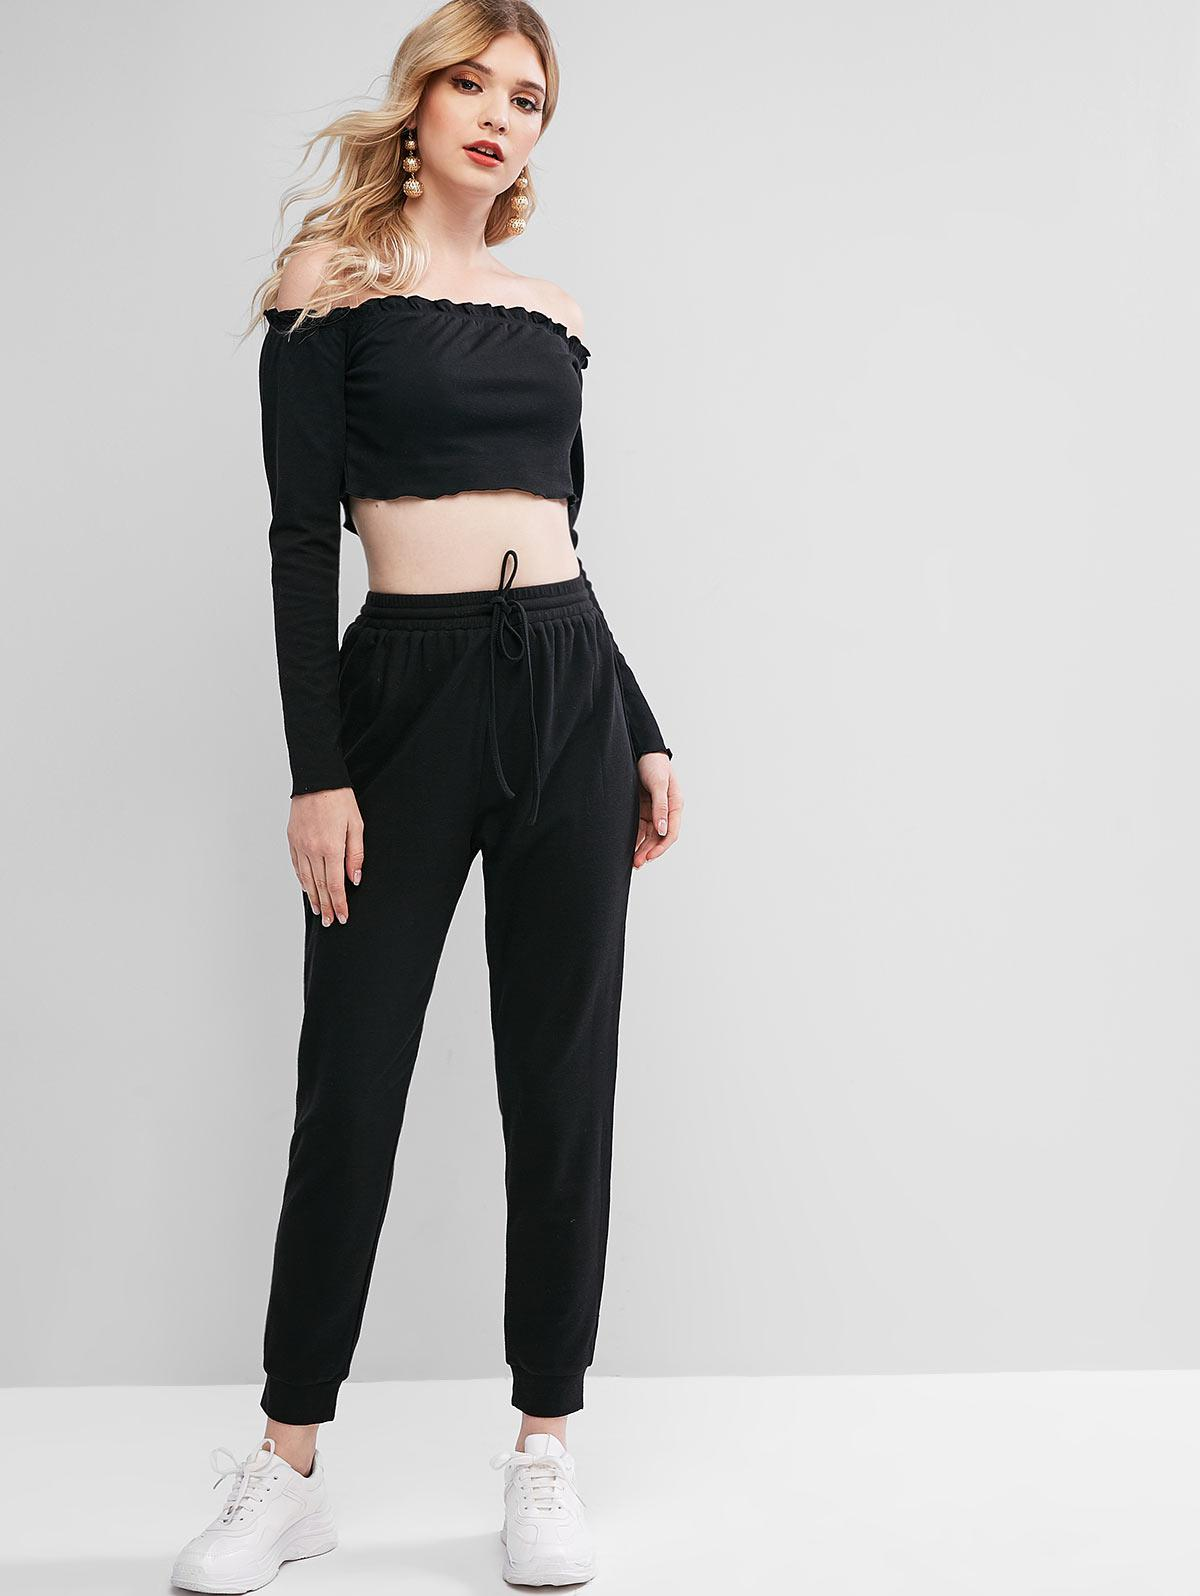 ZAFUL Off Shoulder Crop Drawstring Two Piece Suit фото